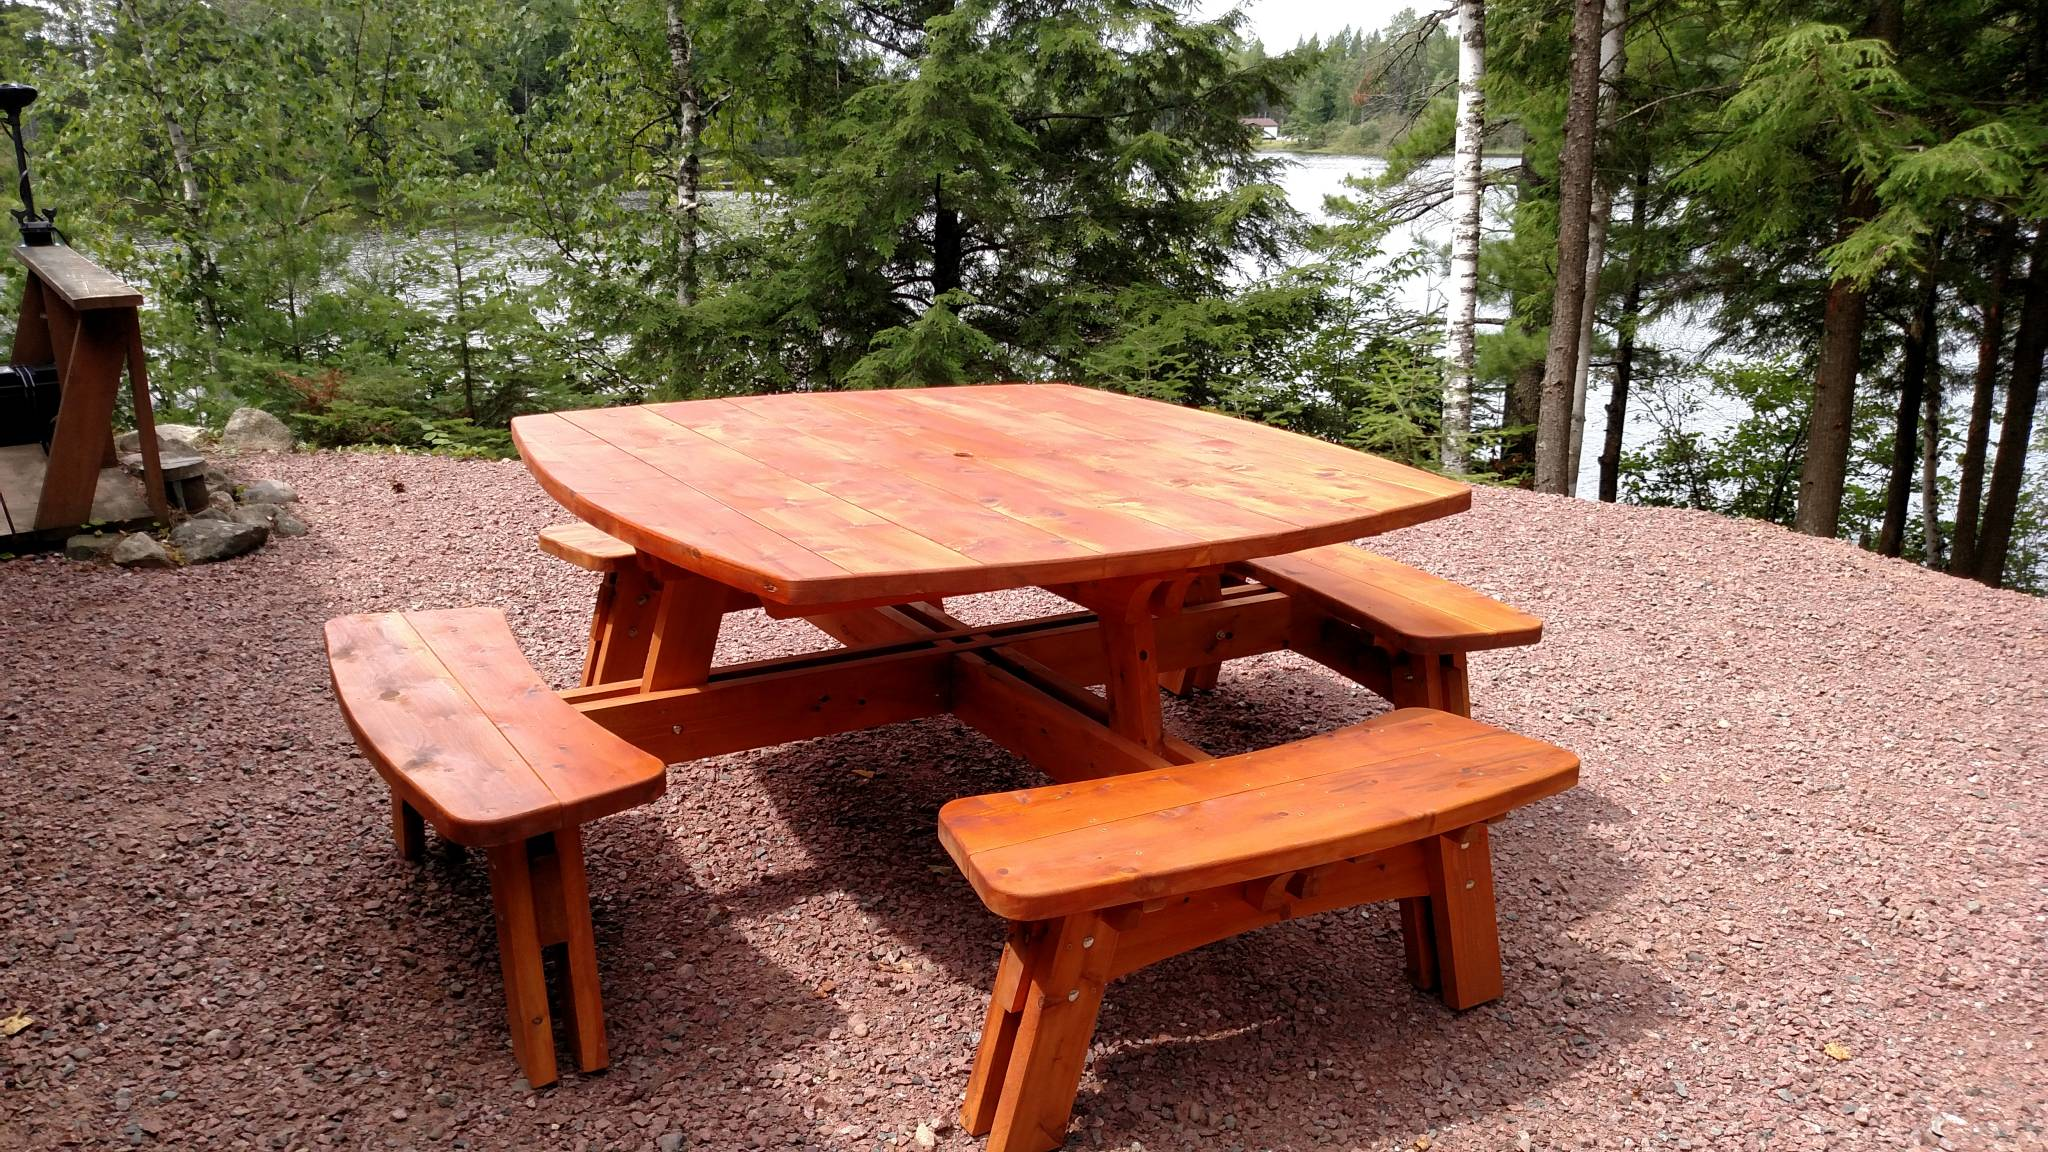 Garden Furniture Handmade park falls, wisconsin outdoor patio furniture store | seed-n-feed